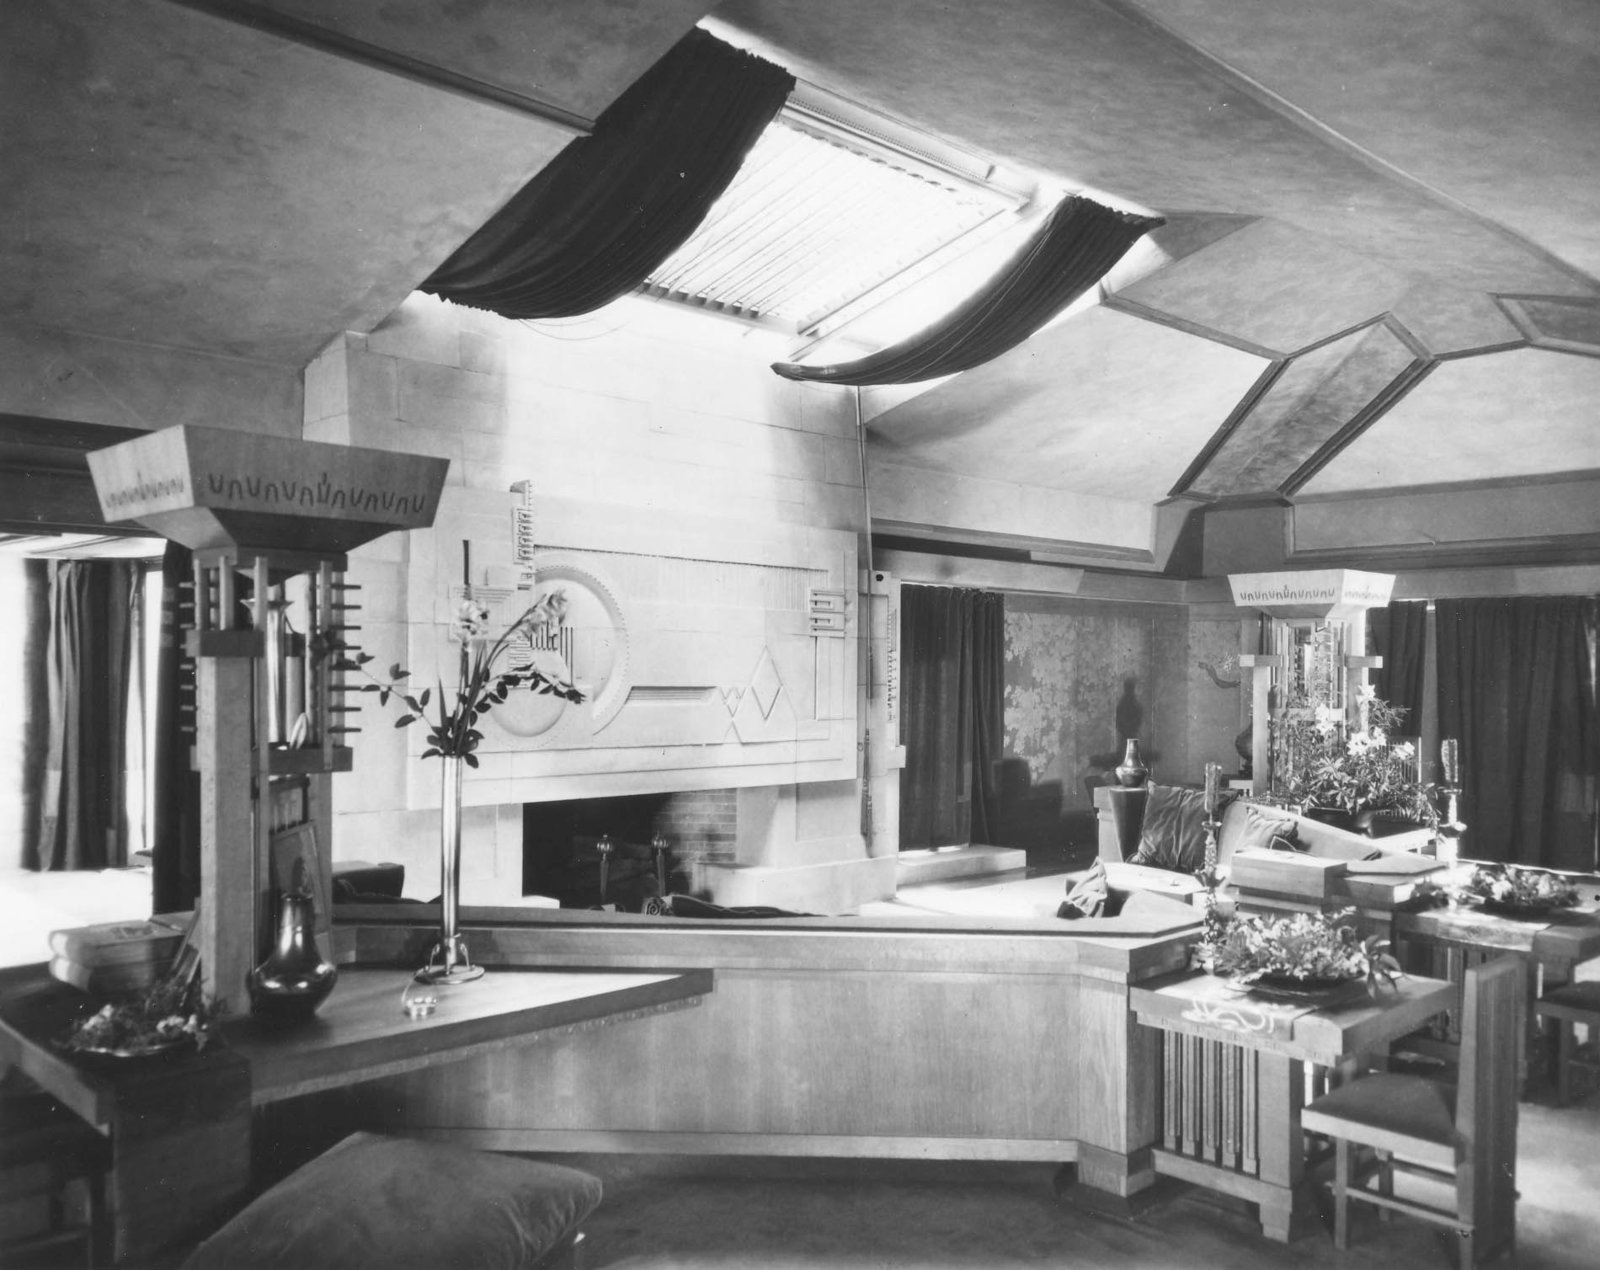 """The Hollyhock House reveals Wright's usage of an open concept plan and reminds us of how he was a master manipulator of space. As seen in this archival image of the living room, it became one of his most influential projects that spread the idea throughout the architectural community. Our tour guide—also known as our """"docent""""—described to us, """"For Wright, compression was always followed by relief. After passing through low entry hallways and multiple columns, you then enter large open spaces through dramatic entrances.""""  Photo 2 of 14 in Iconic Perspectives: Frank Lloyd Wright's Hollyhock House"""